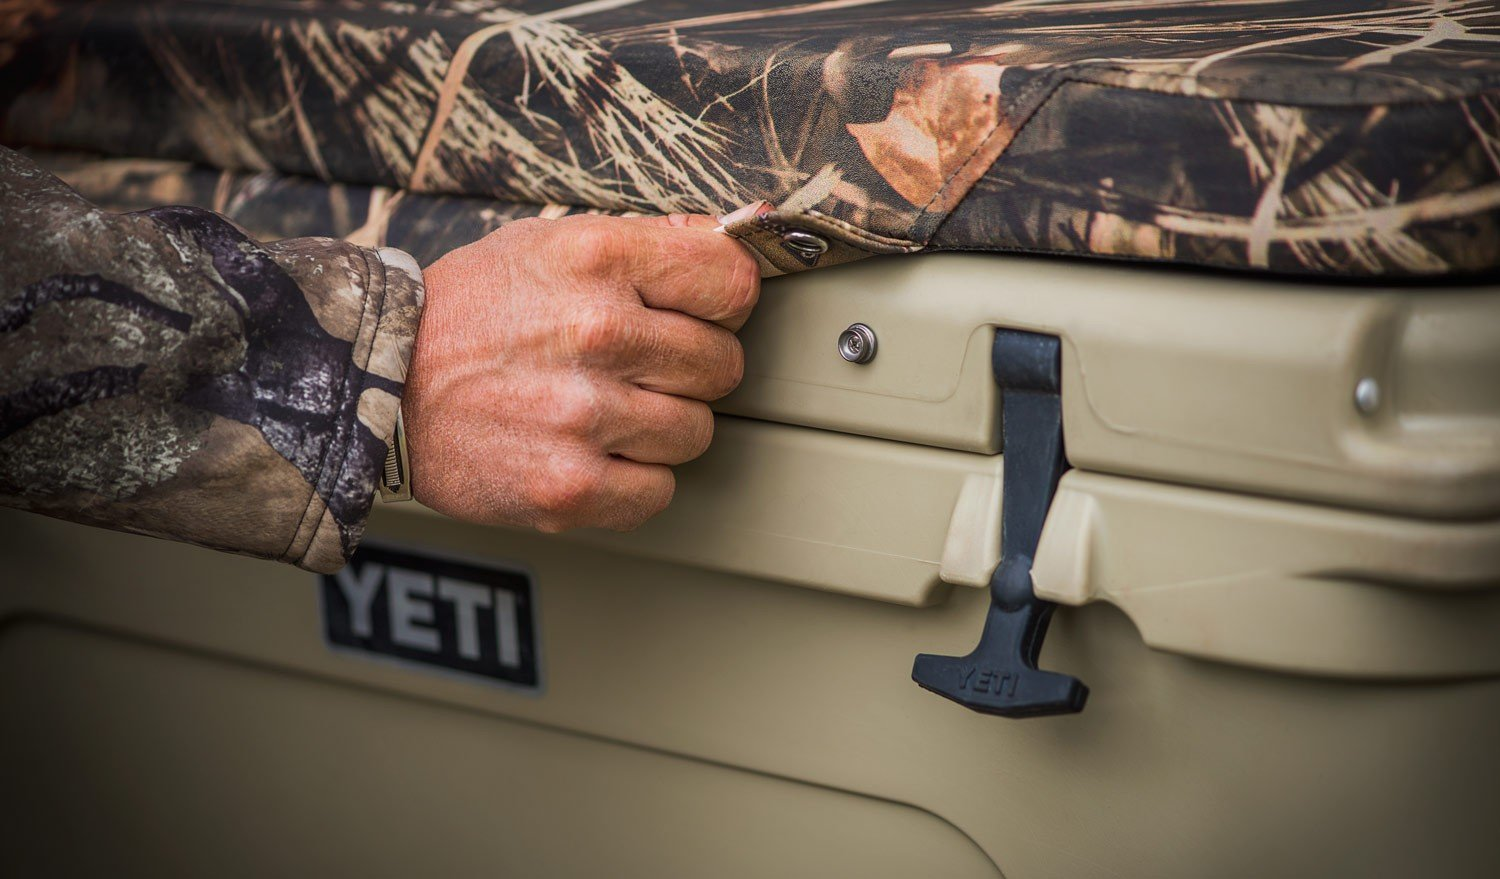 yeti-seatcushion-camo-2-1501246822430